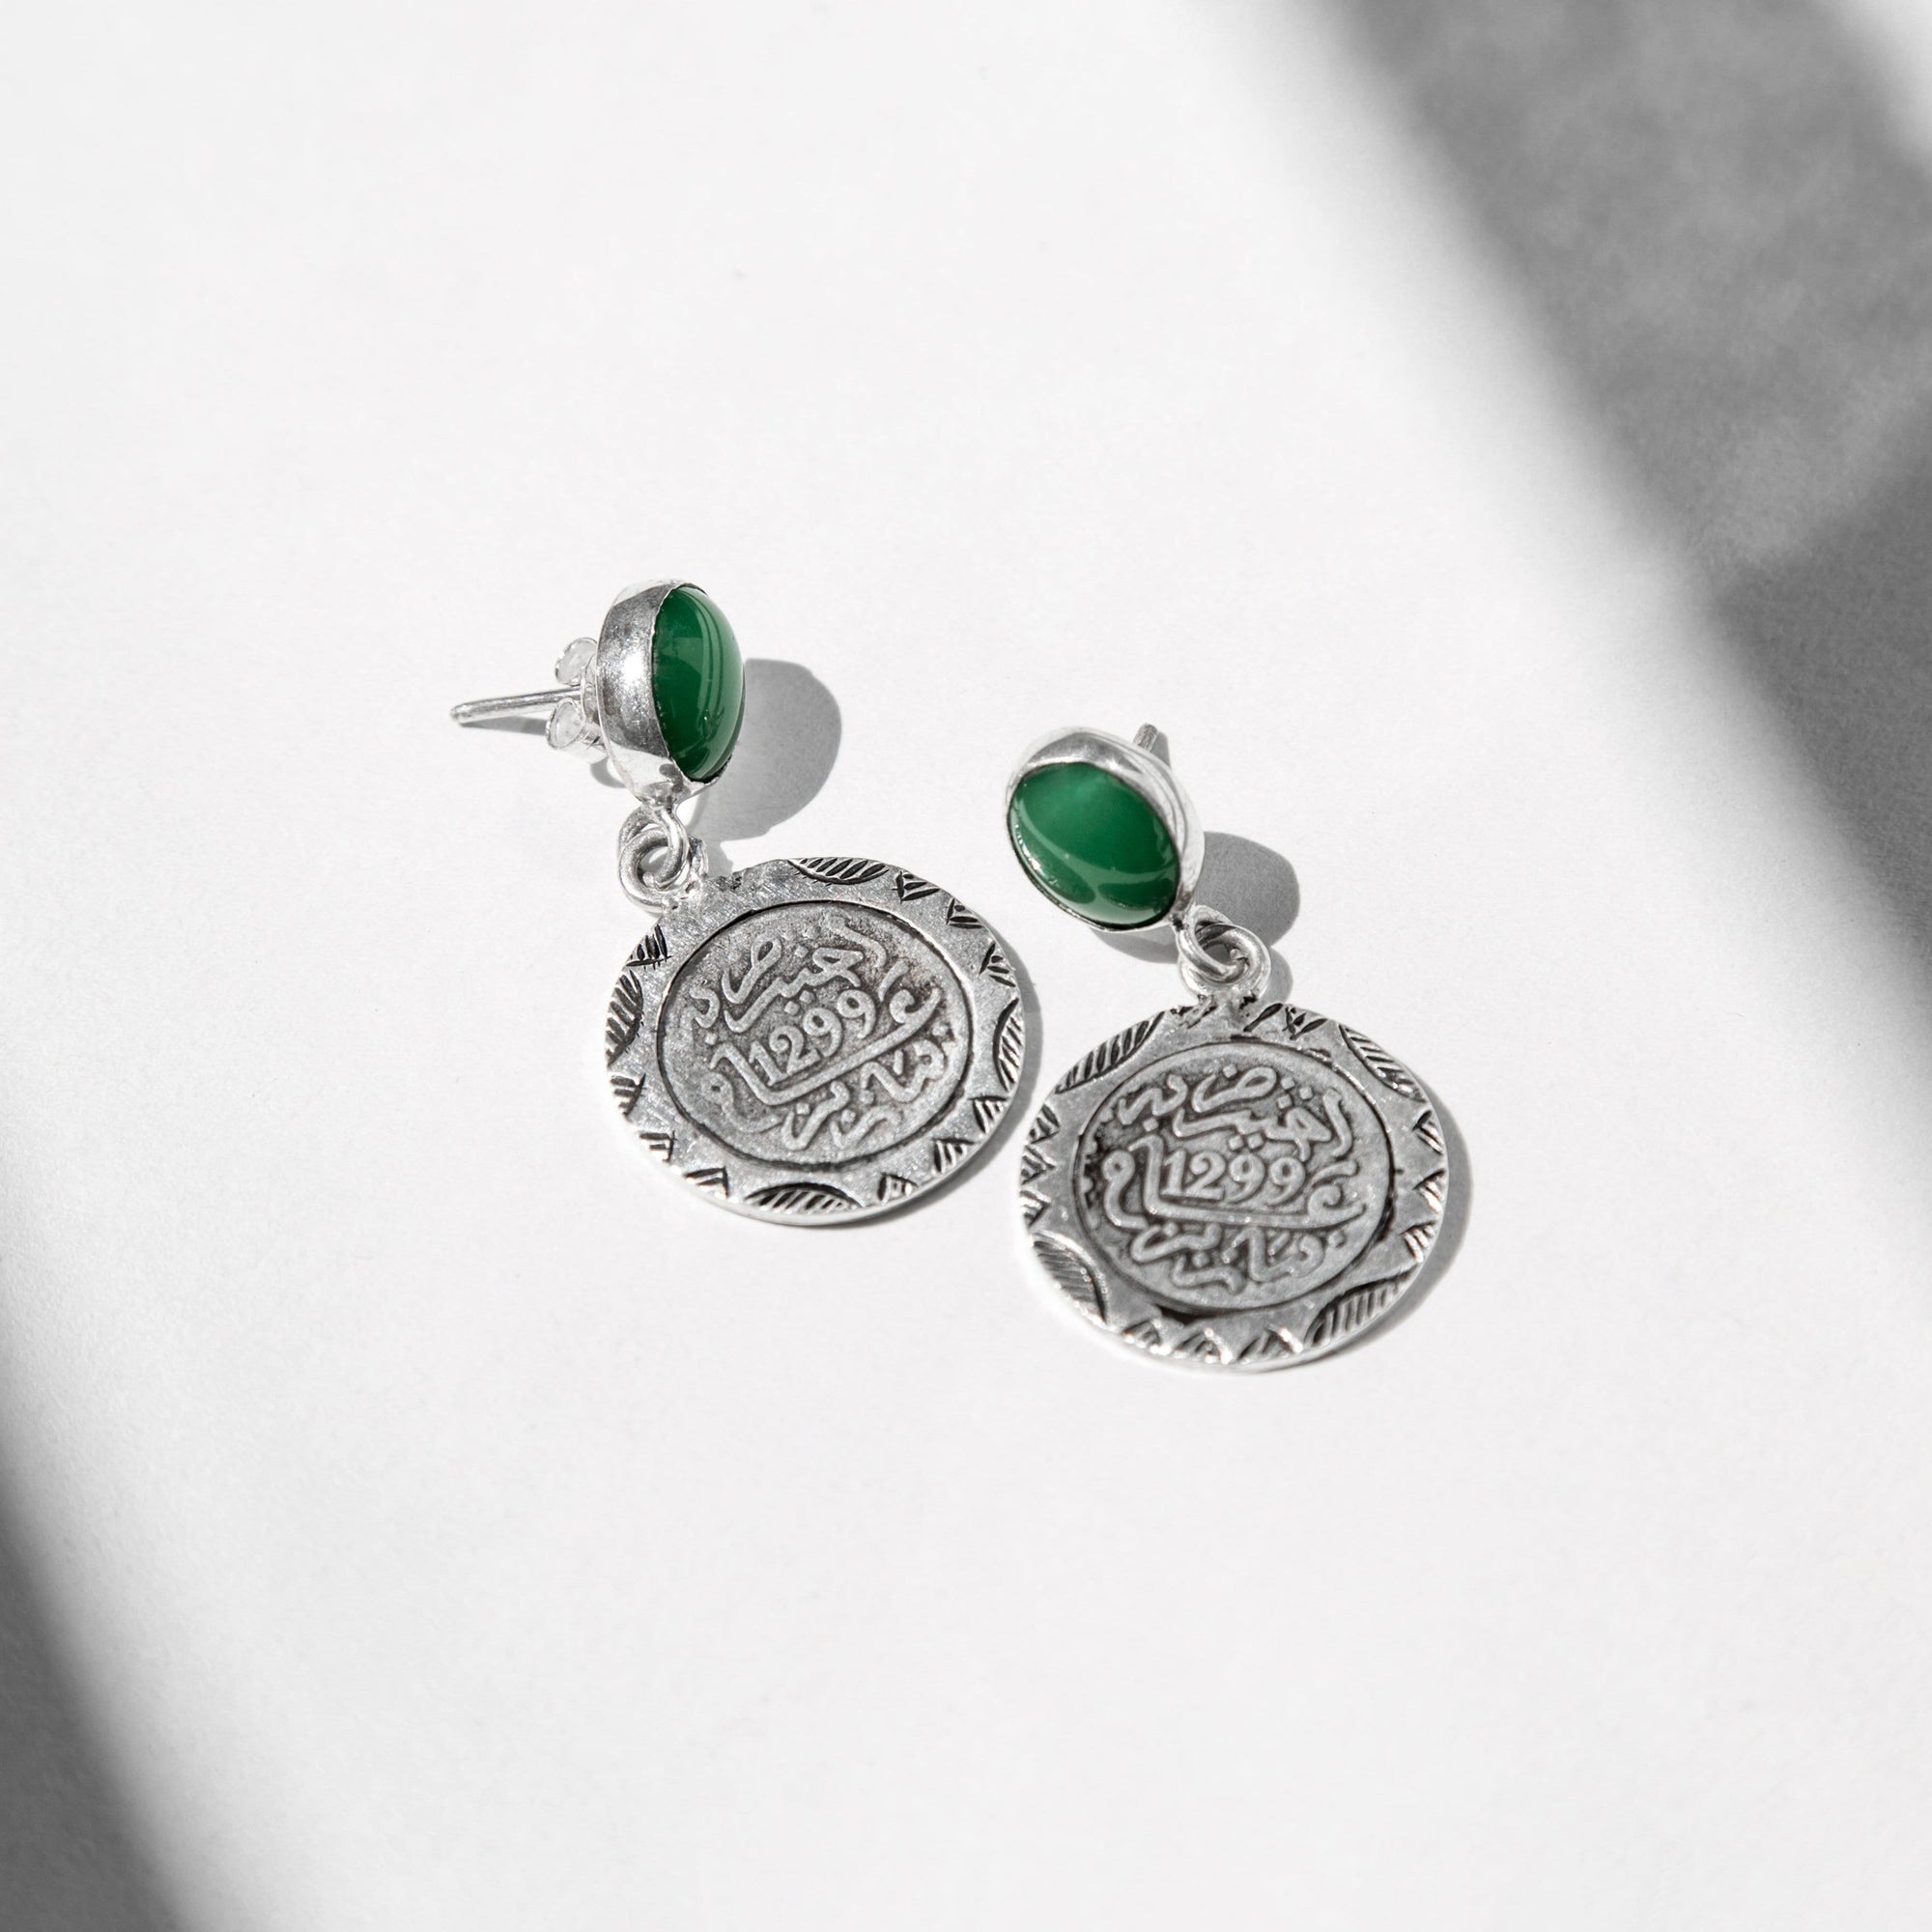 Mint Tea Coins Earrings